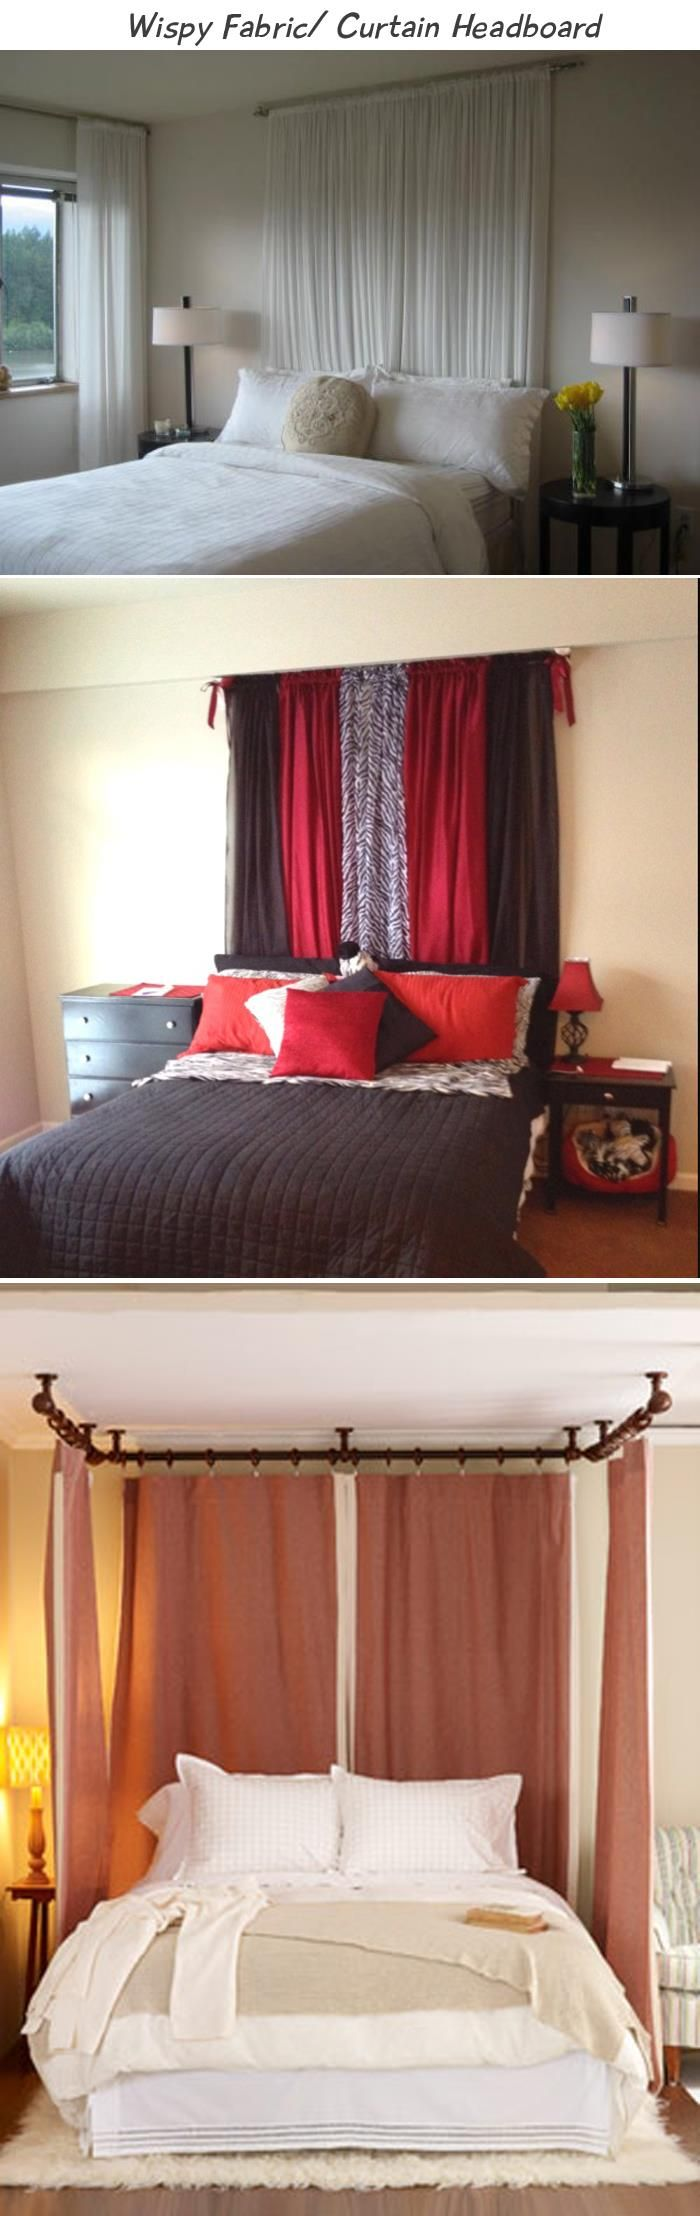 Whispy Fabric or curtain headboard